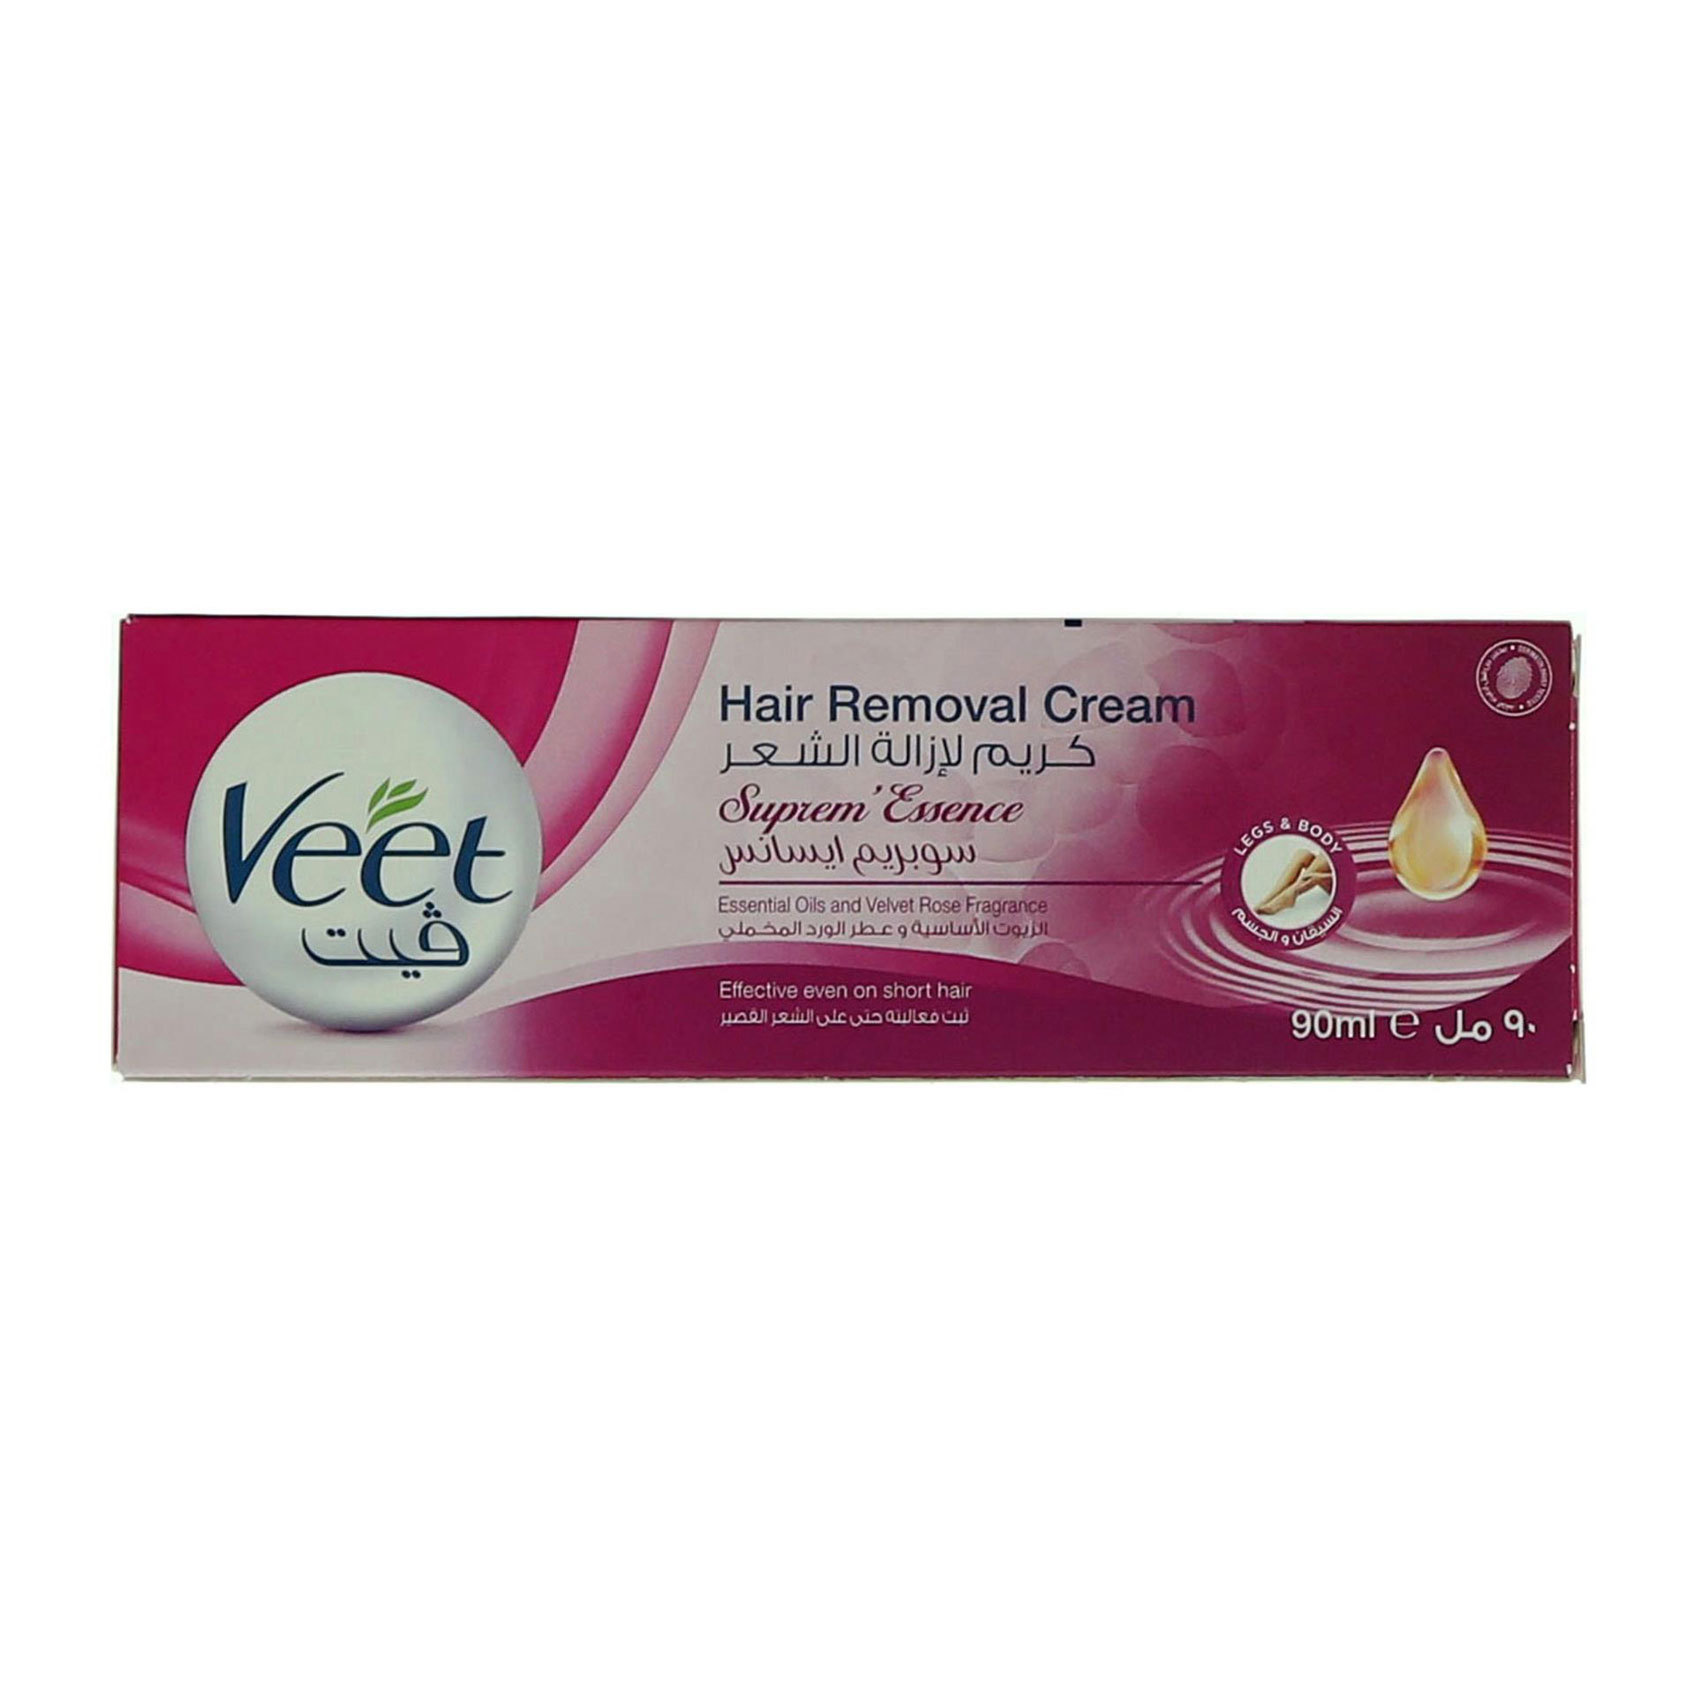 VEET CREAM SUPREM ESSENCE 90 ML